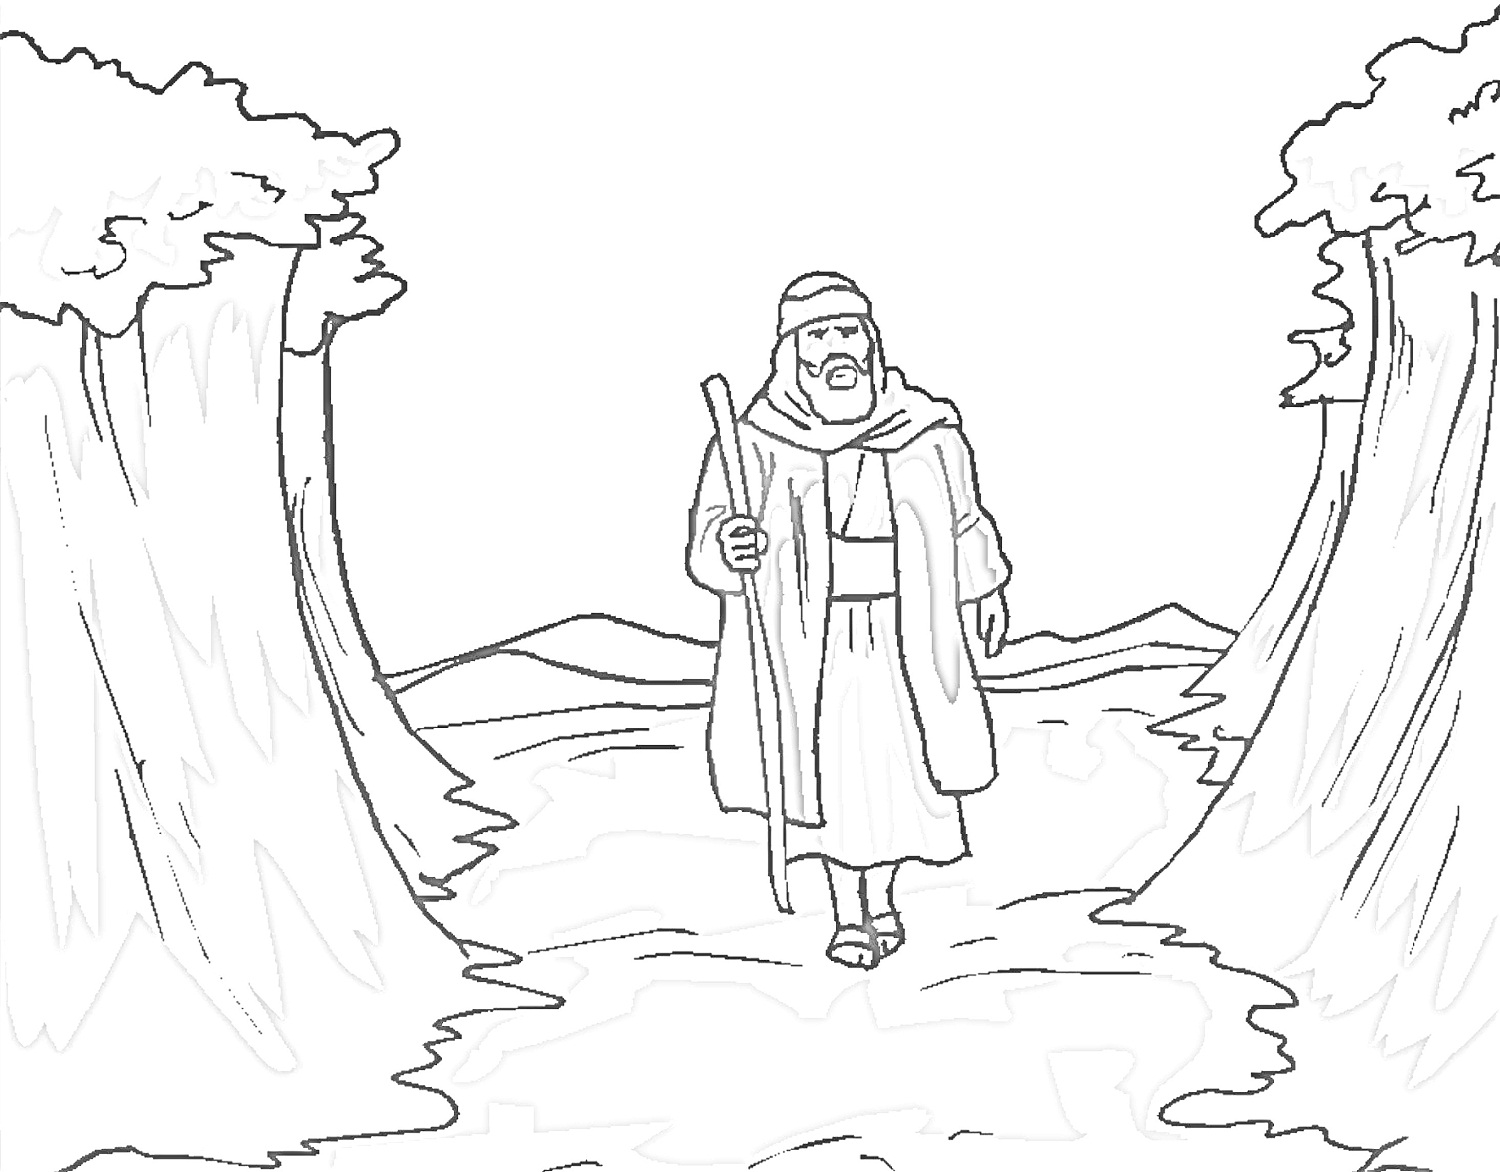 moses coloring sheet printable moses coloring pages for kids cool2bkids moses sheet coloring